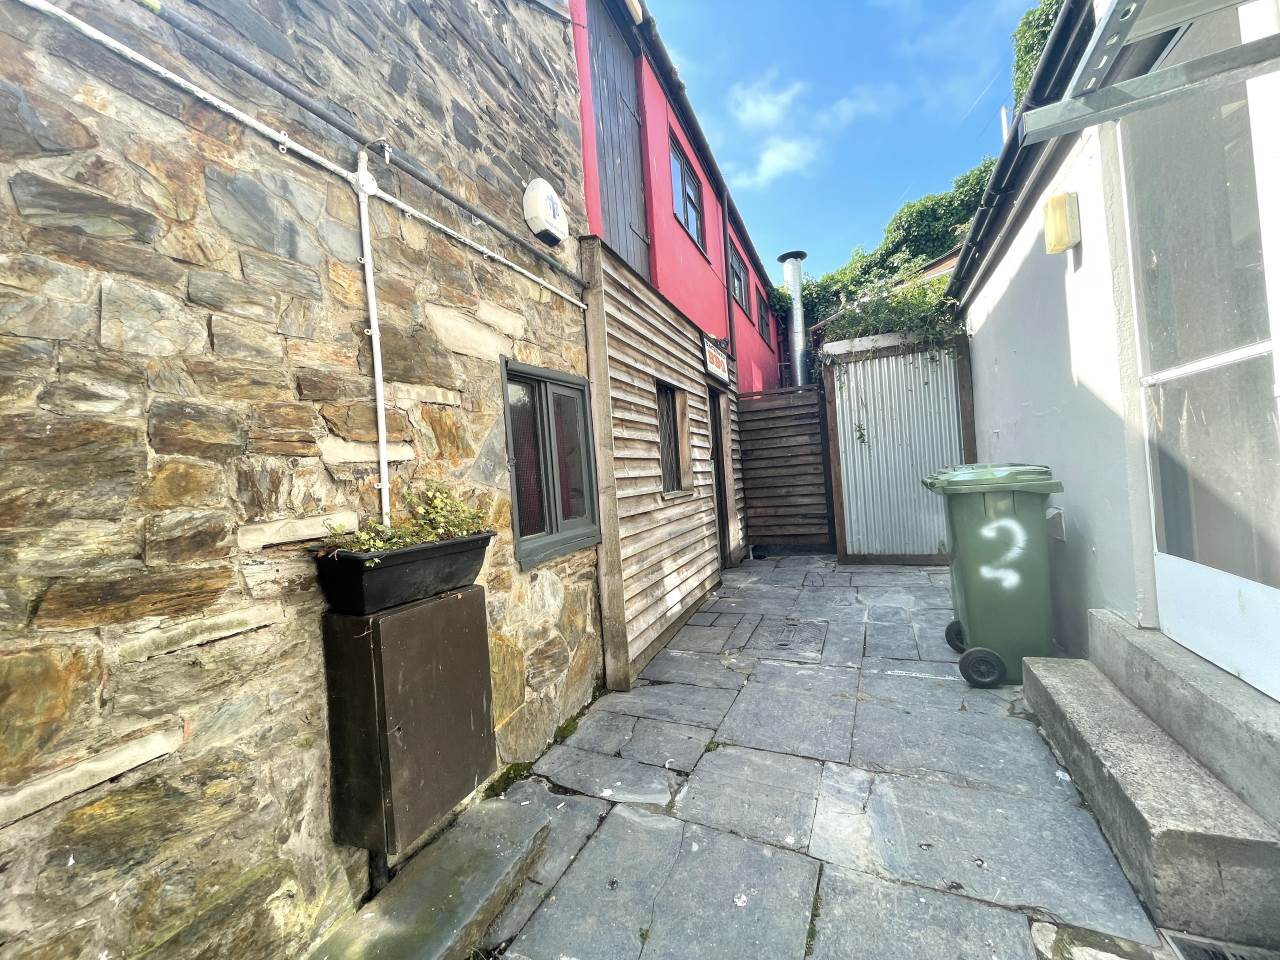 Commercial property to rent in Baker Street, Aberystwyth - Property Image 1